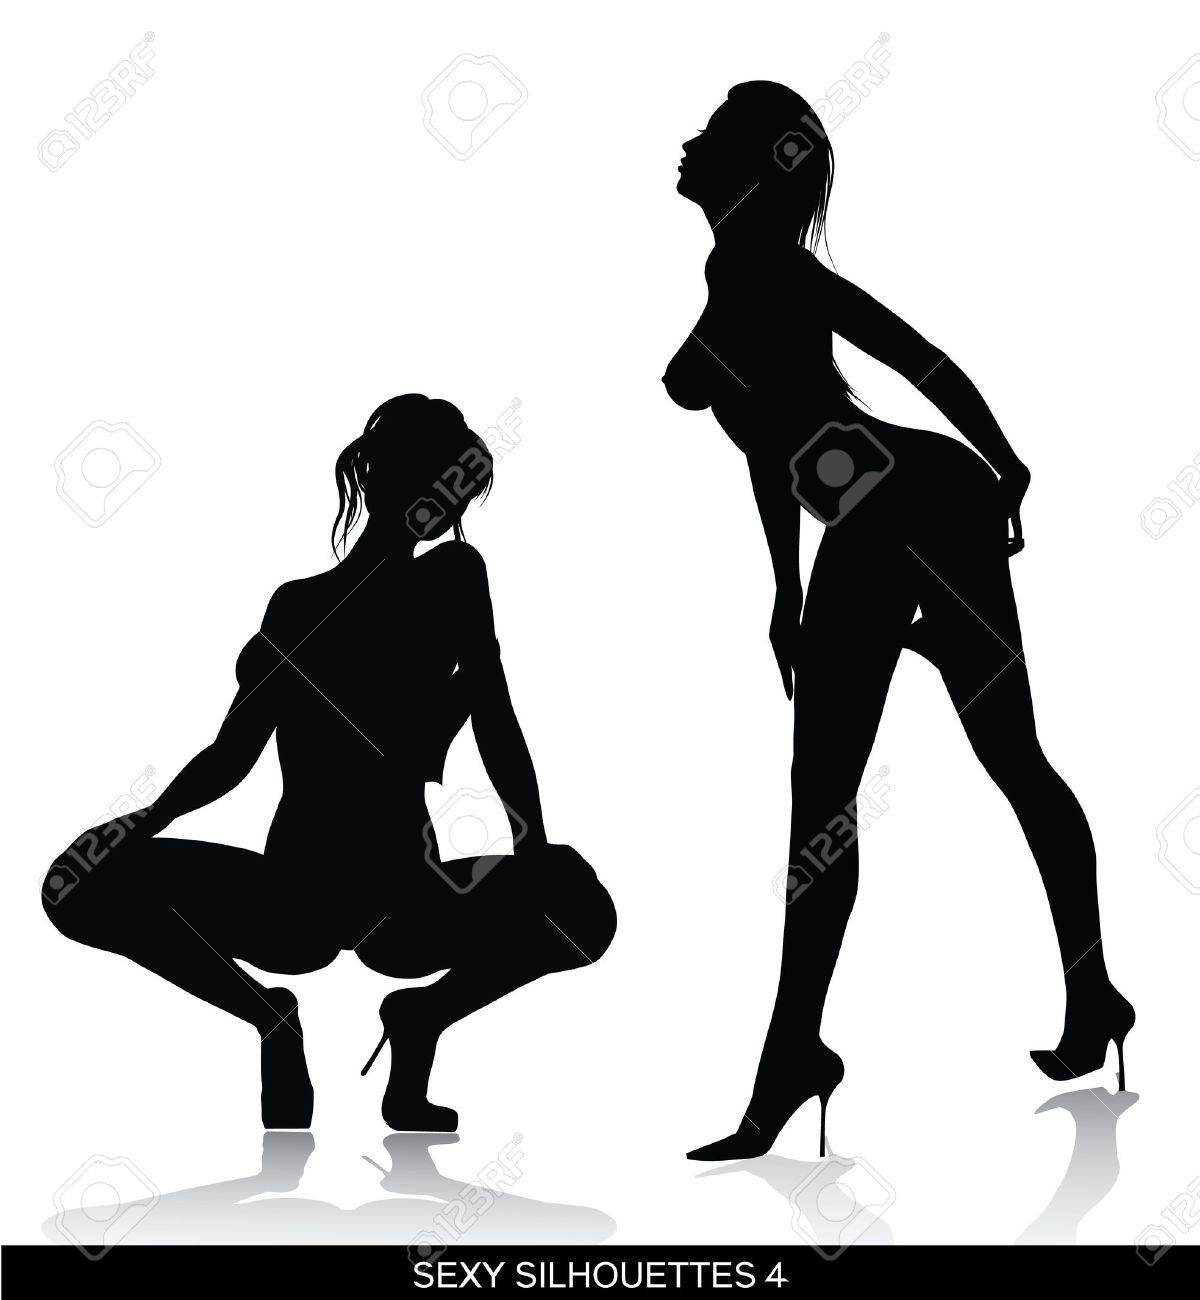 Sexy silhouette images